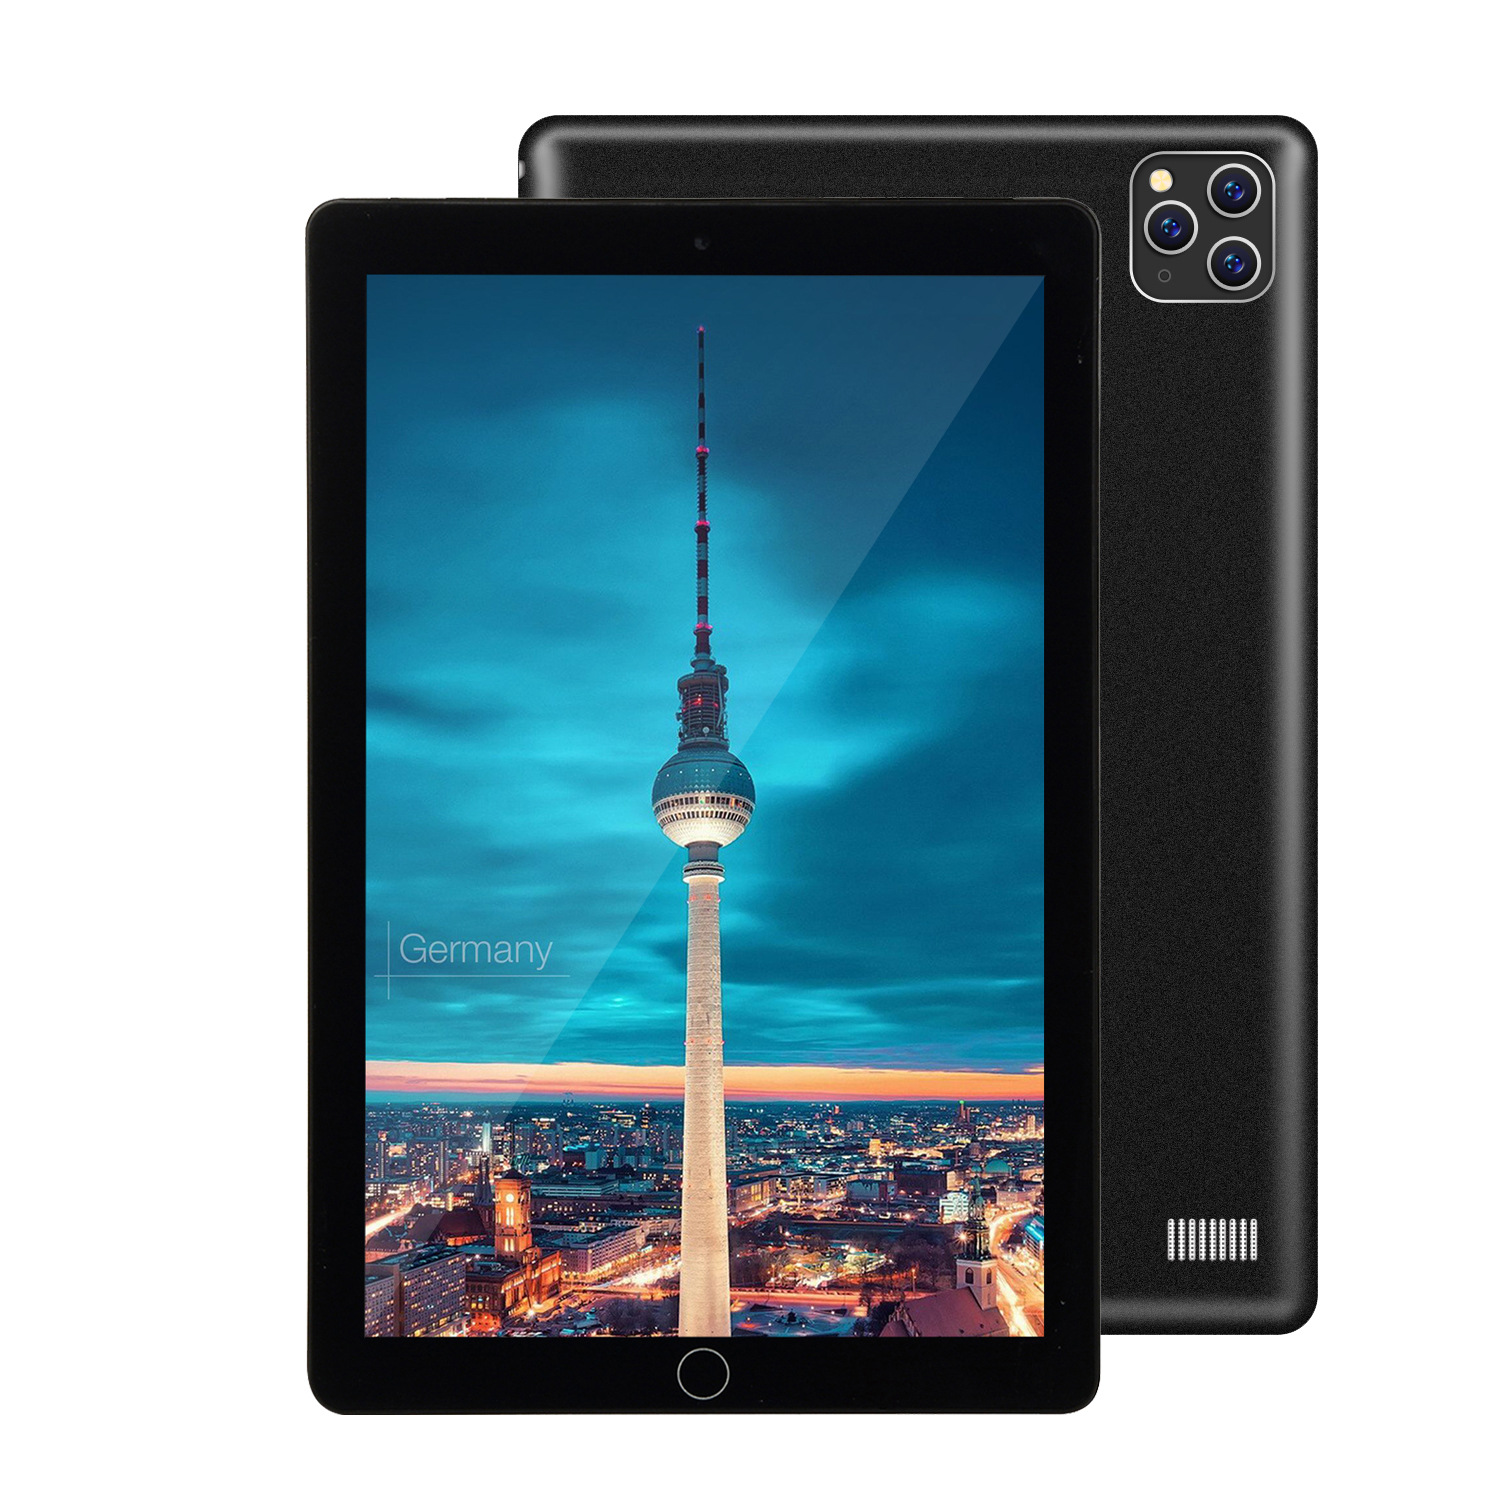 2020 New 10 Inch Three Cameras Tablet 6G+128GB Android 9.0 Tablet Pc Support 4G Dual Card Phone Call Kids Tablet Study Tablet